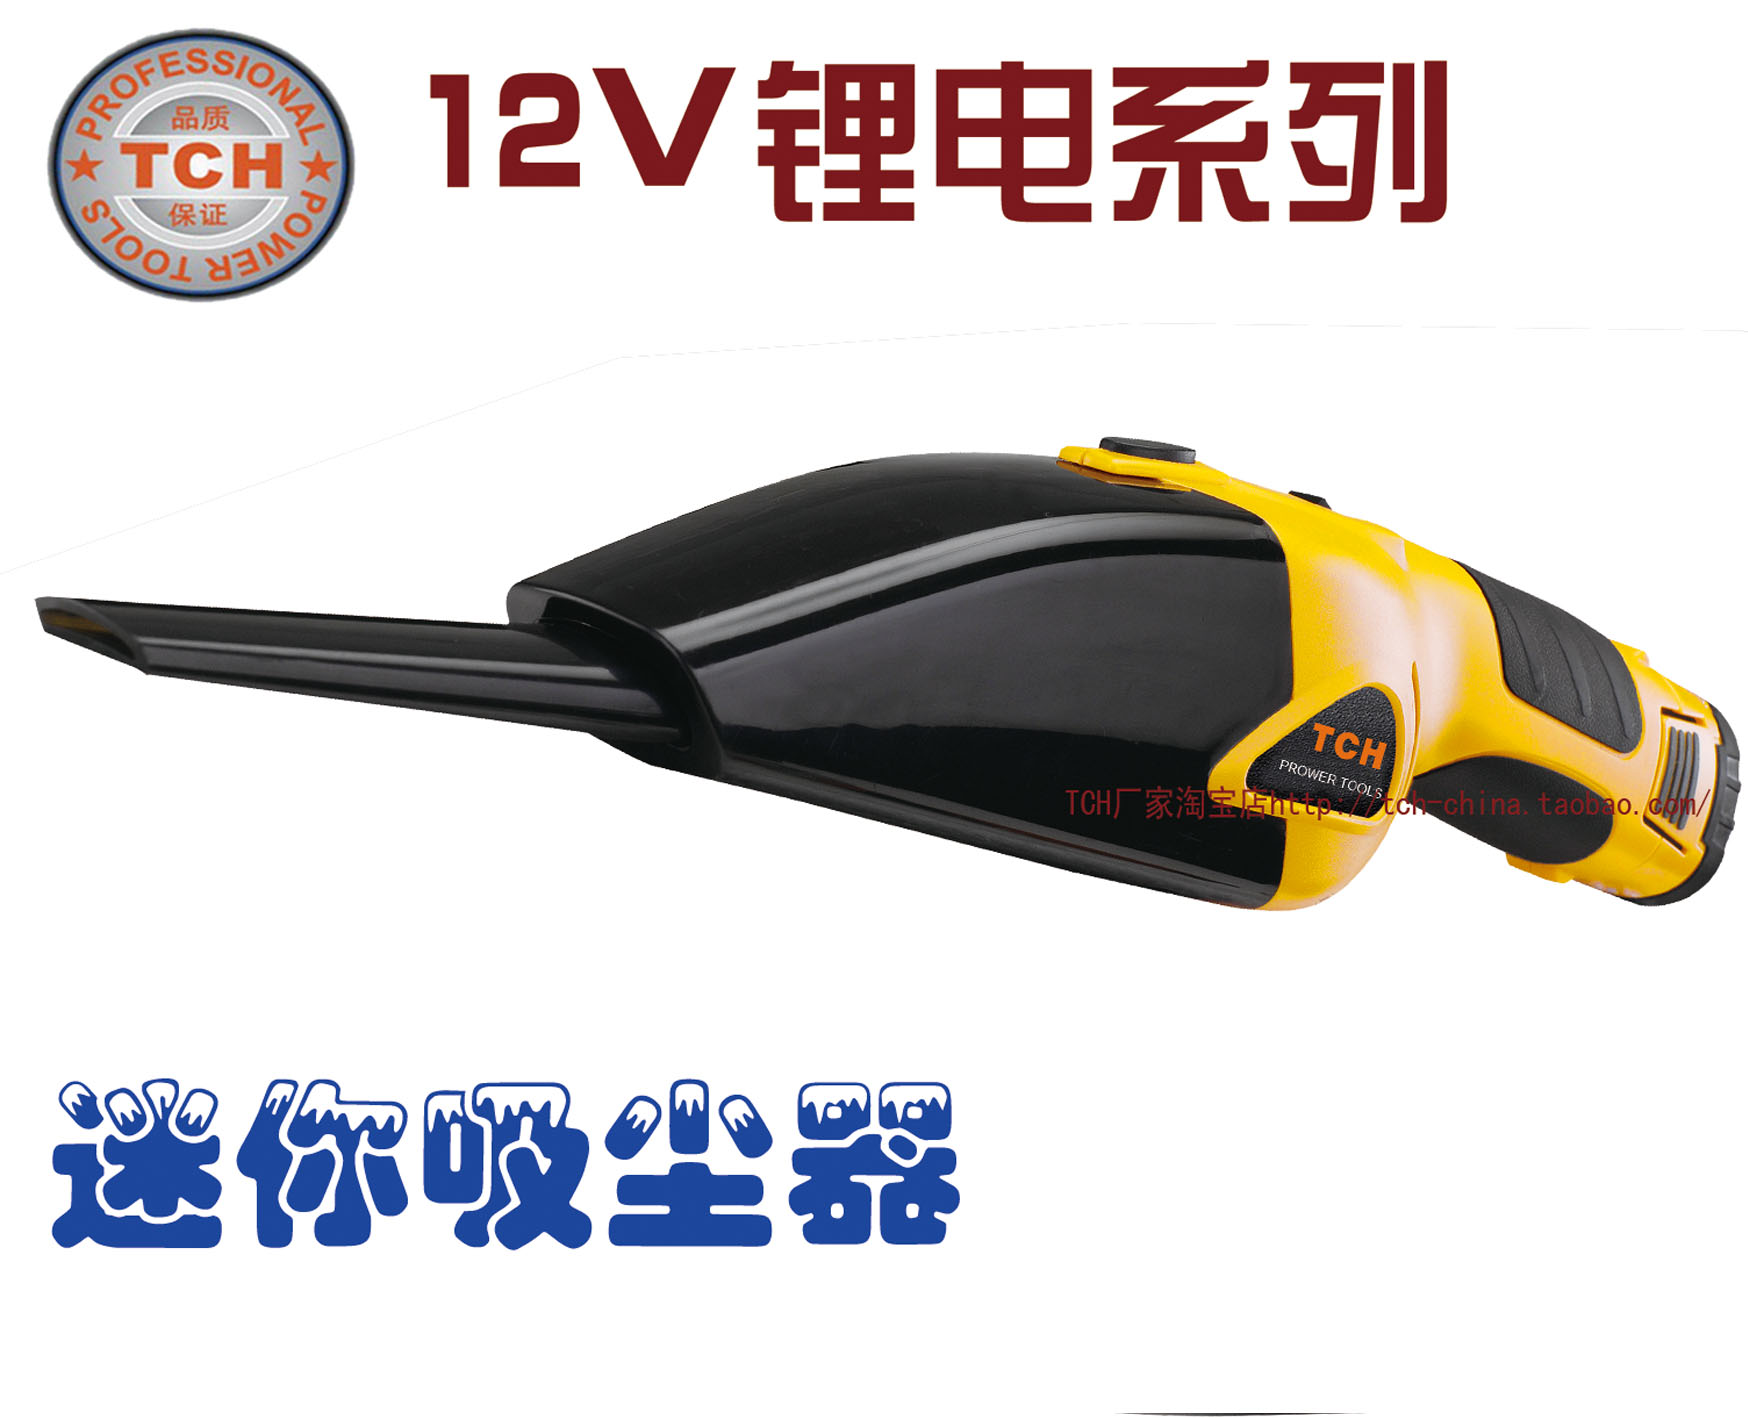 12v lithium battery vacuum cleaner mini vacuum cleaner handheld cordless charge type sofa car vacuum cleaner(China (Mainland))